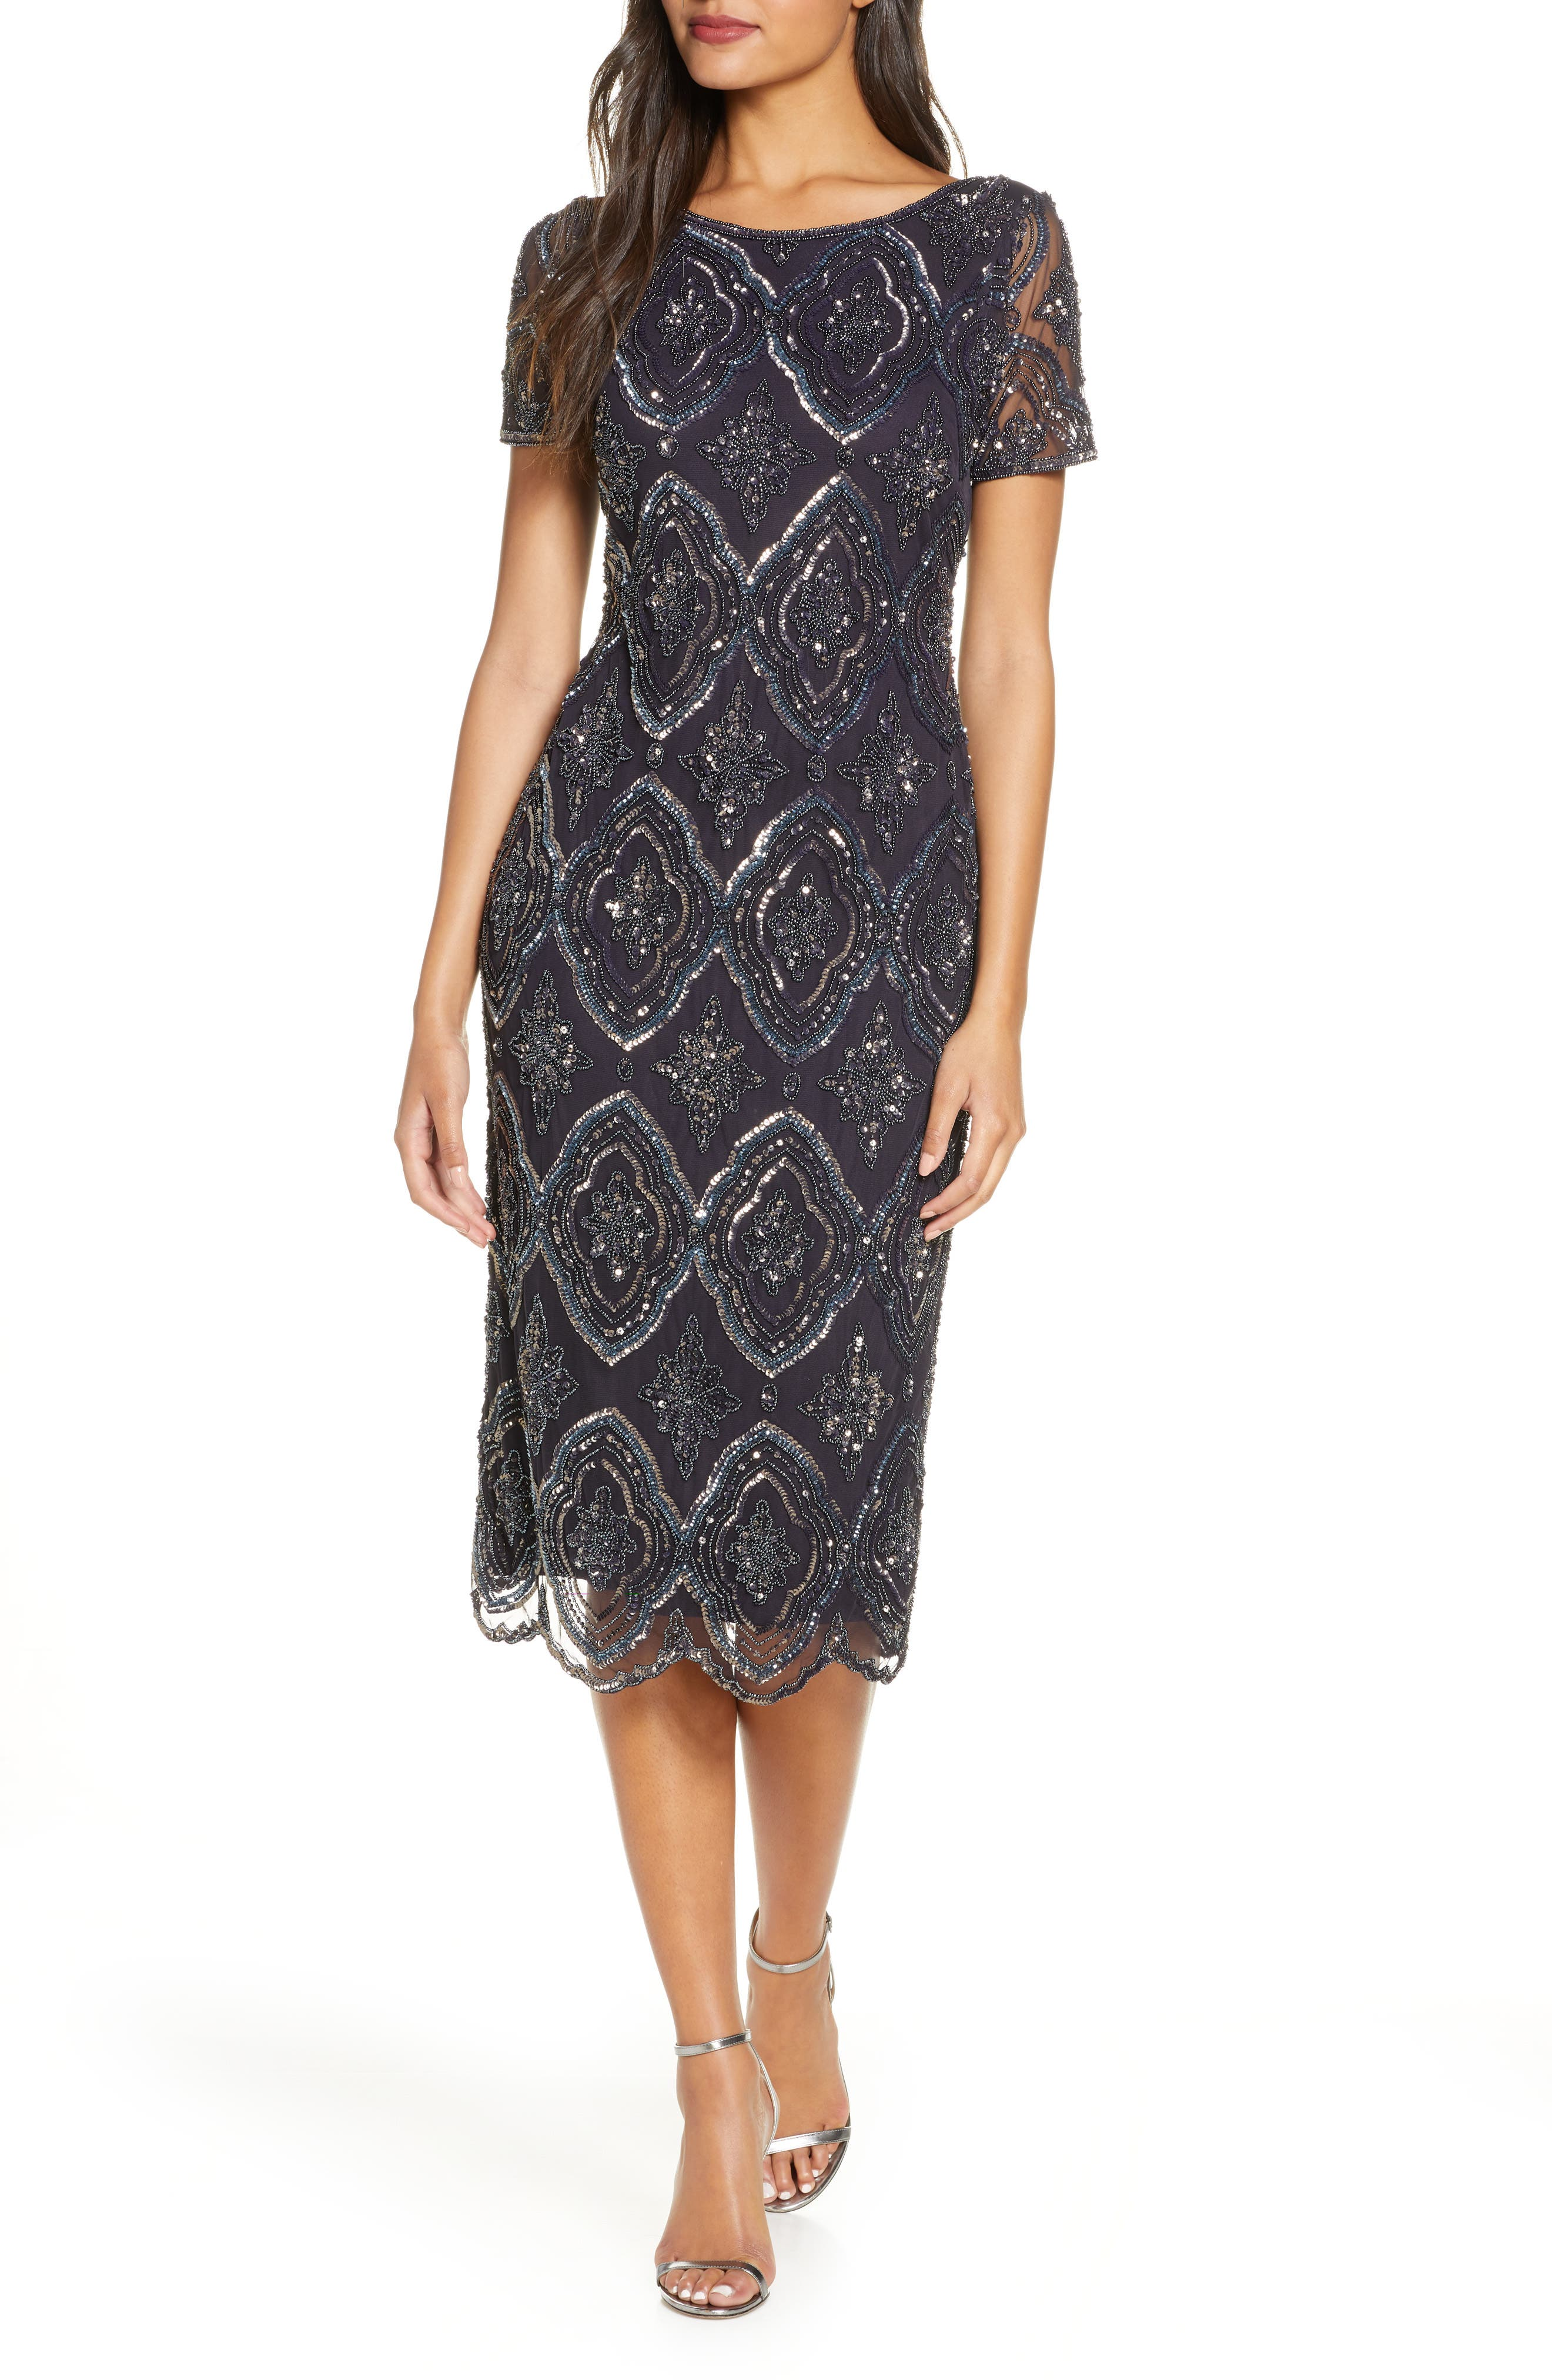 Vintage 1920s Dresses – Where to Buy Womens Pisarro Nights Stain Glass Beaded Cocktail Dress $218.00 AT vintagedancer.com